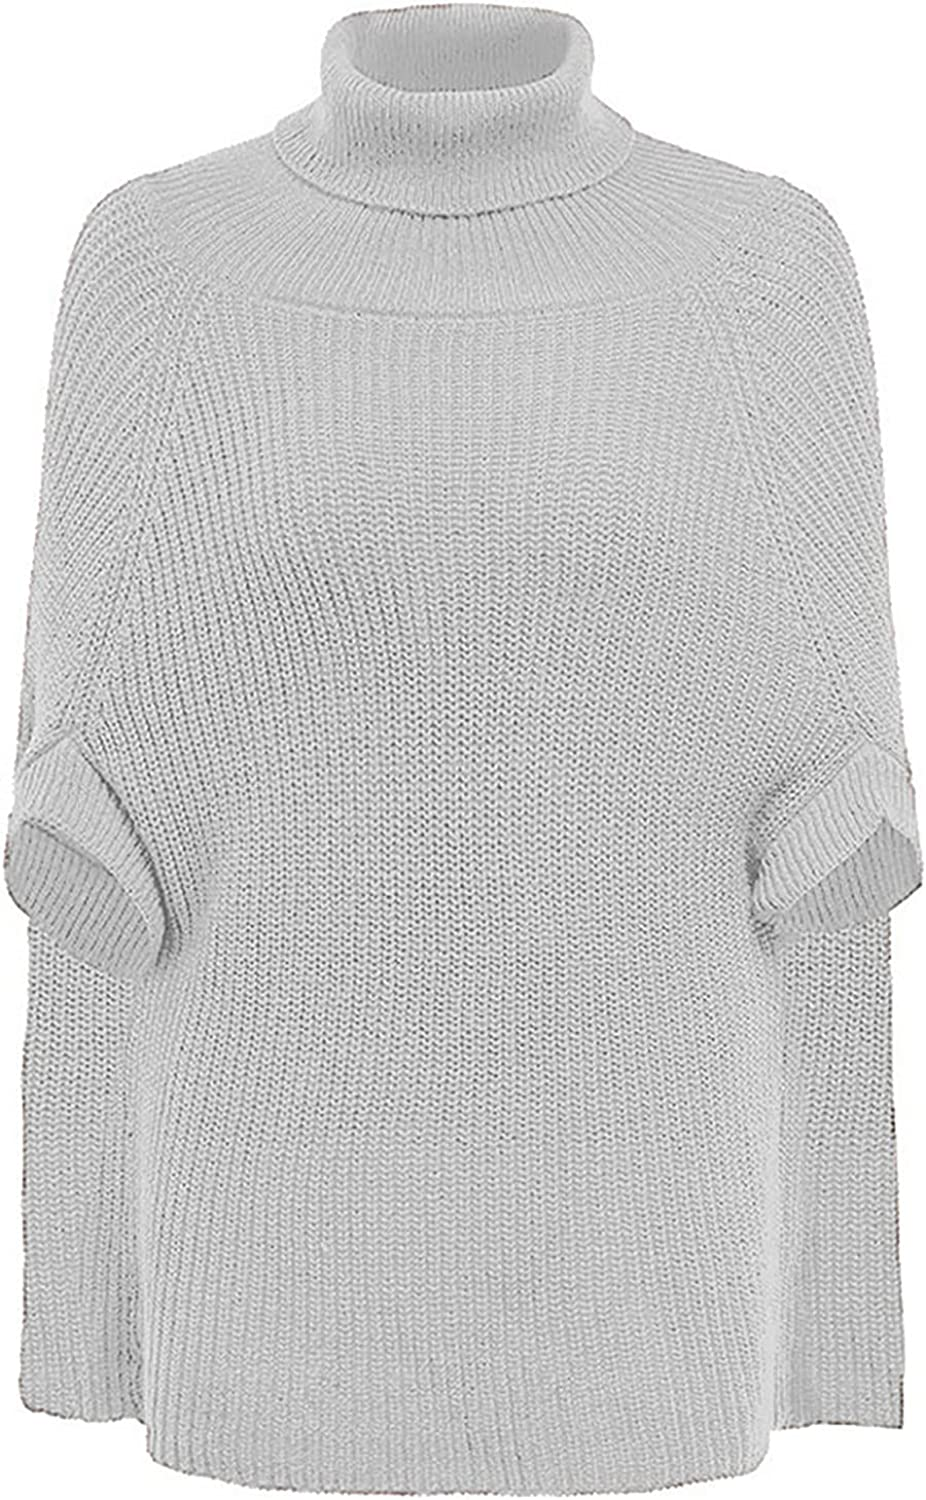 VonVonCo Fashion Pullover Sweaters for Women Casual Pure Long Sleeve Turtleneck Knitted Half Sleeve Pullover Sweater Top